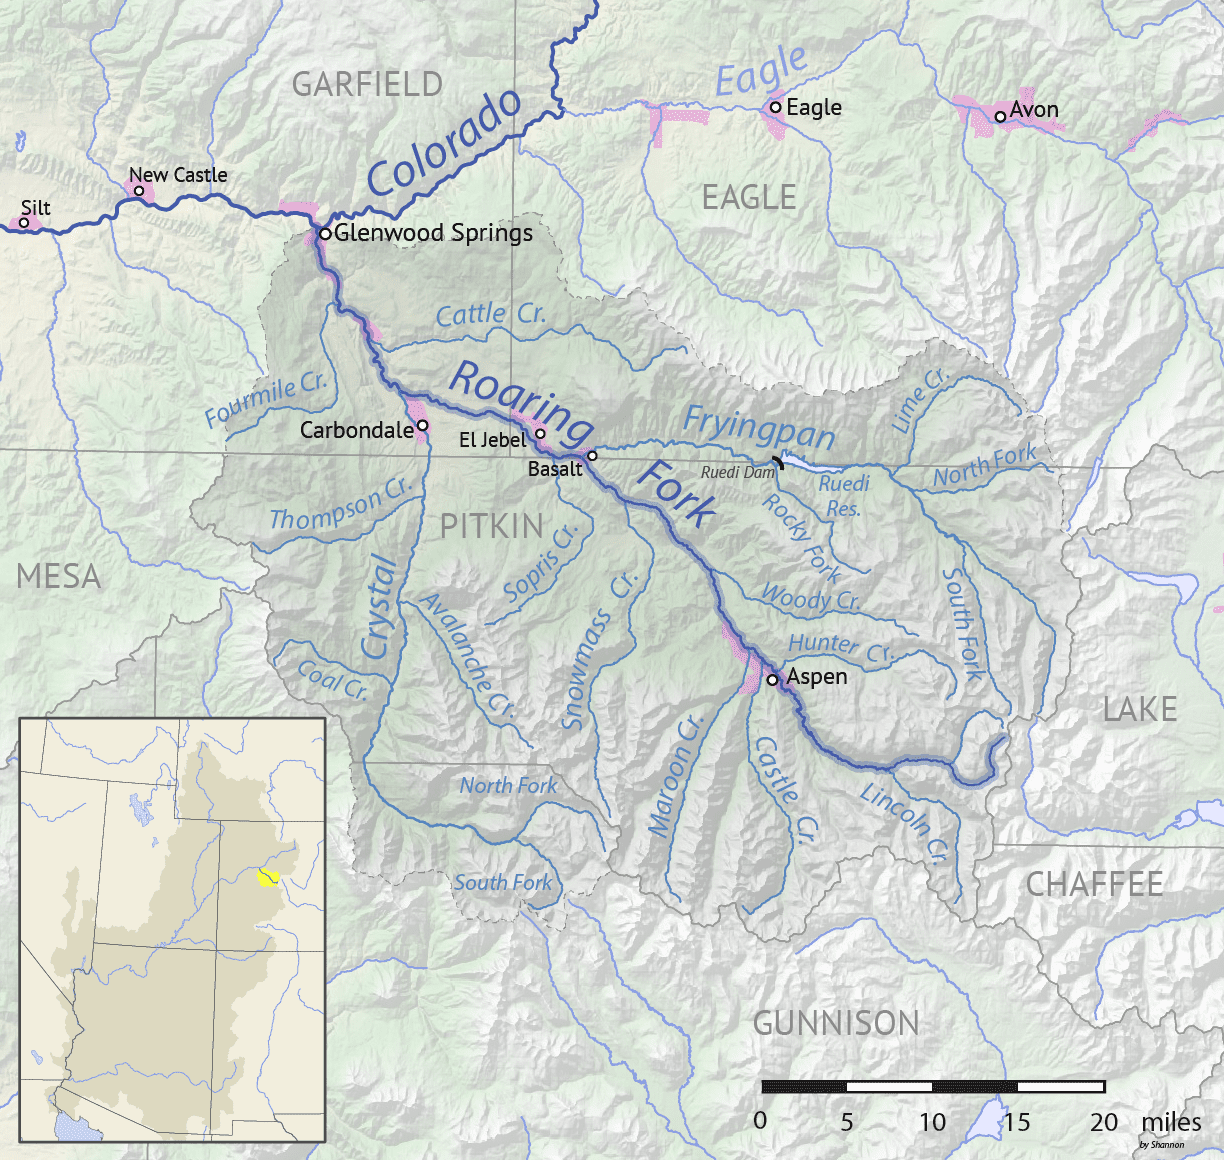 Image of the Crystal River and Roaring Fork River map